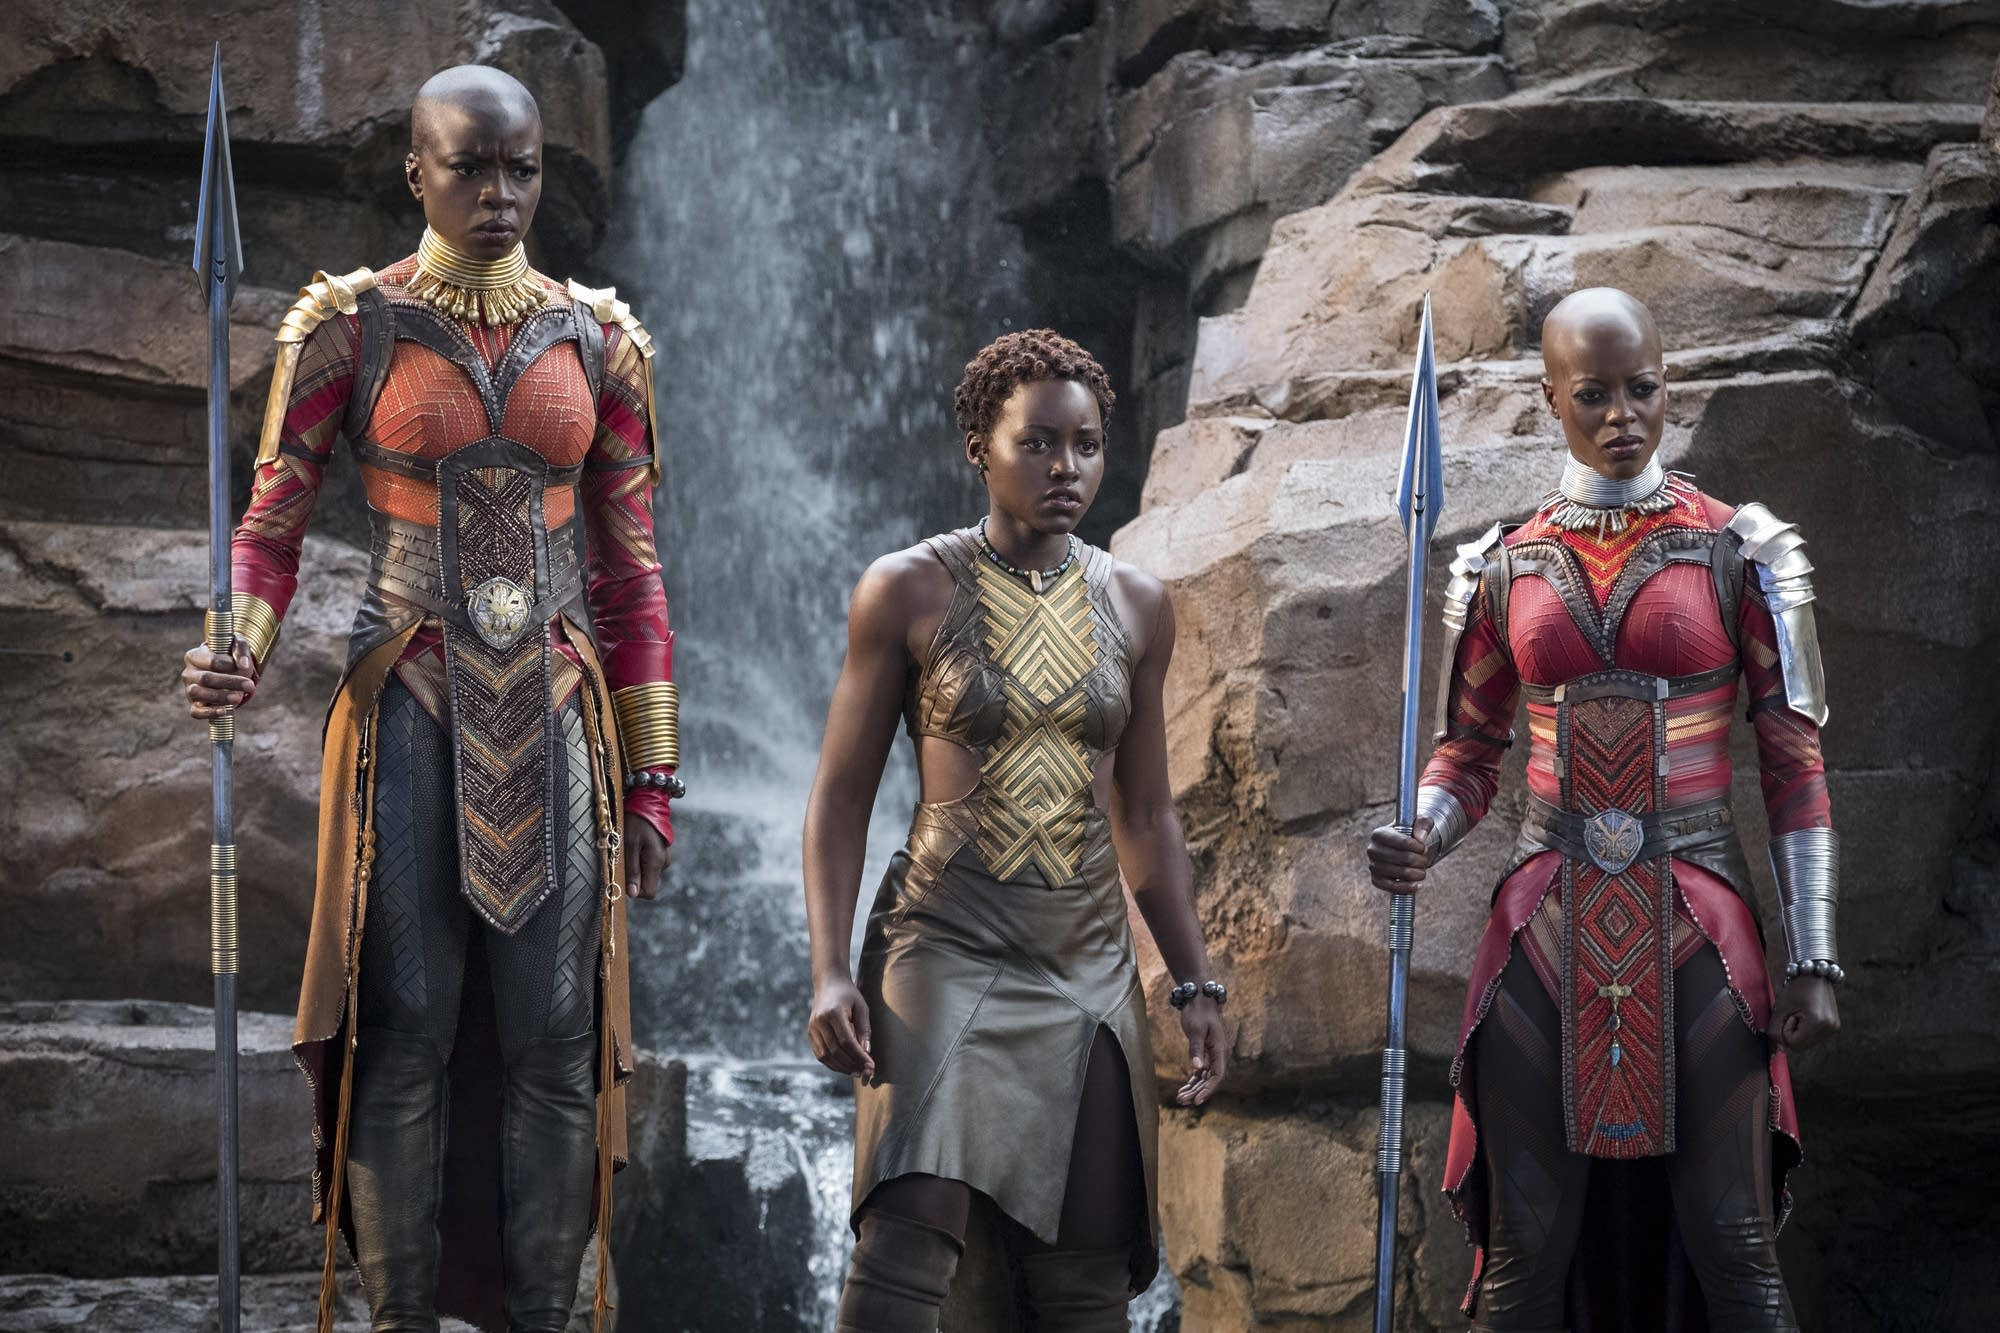 Danai Gurira, Lupita Nyong'o and Florence Kasumba in the Black Panther.